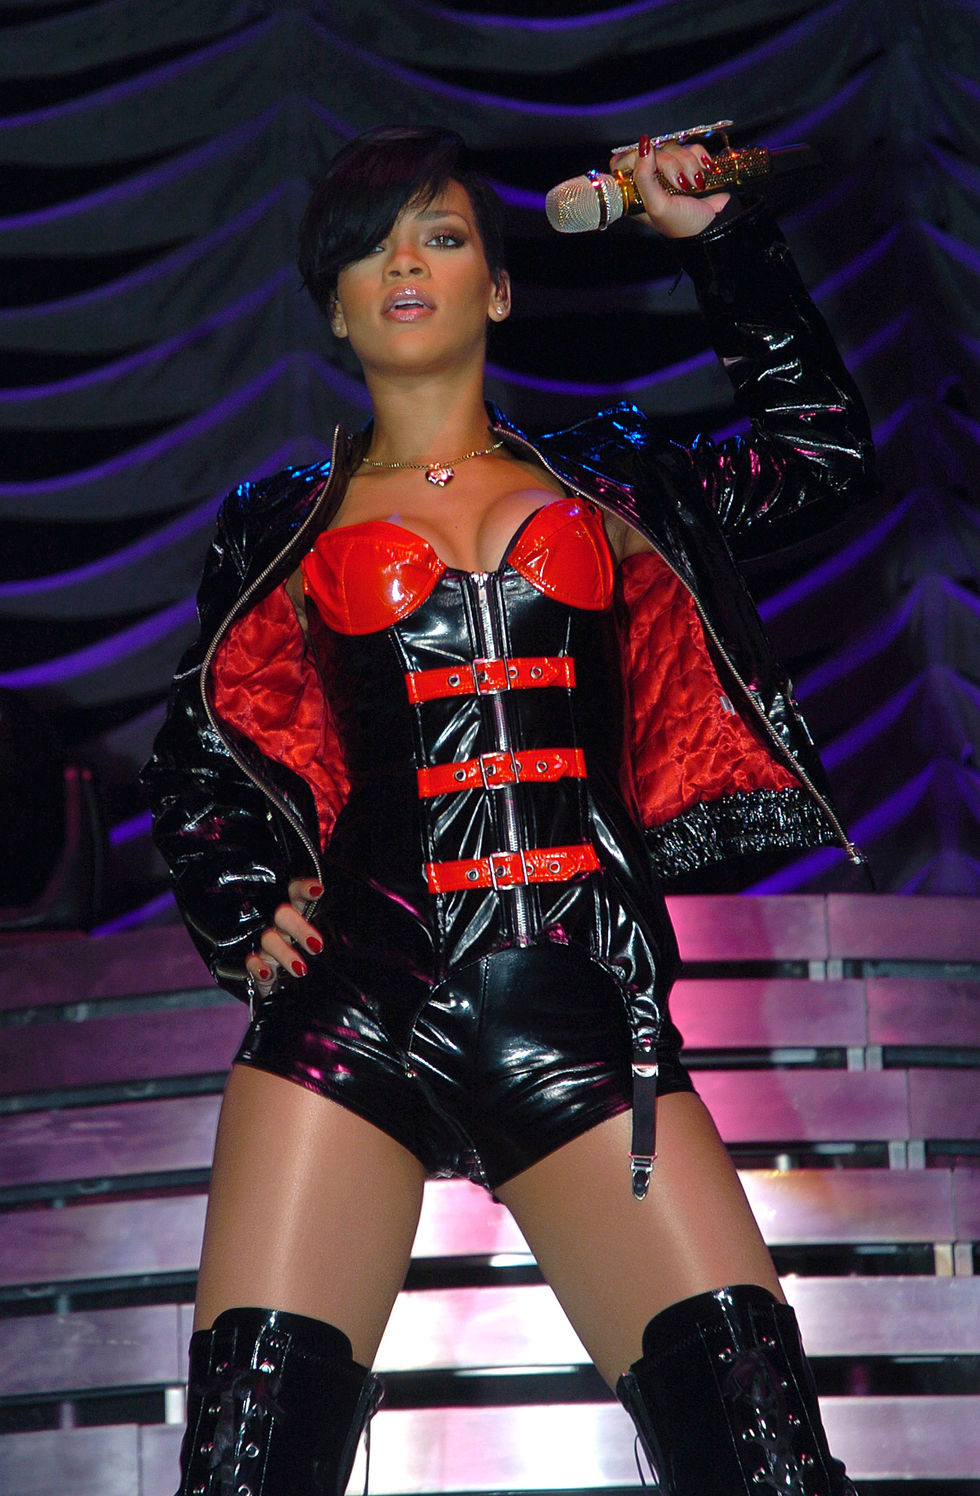 rihanna-performs-at-concert-in-belfast-01